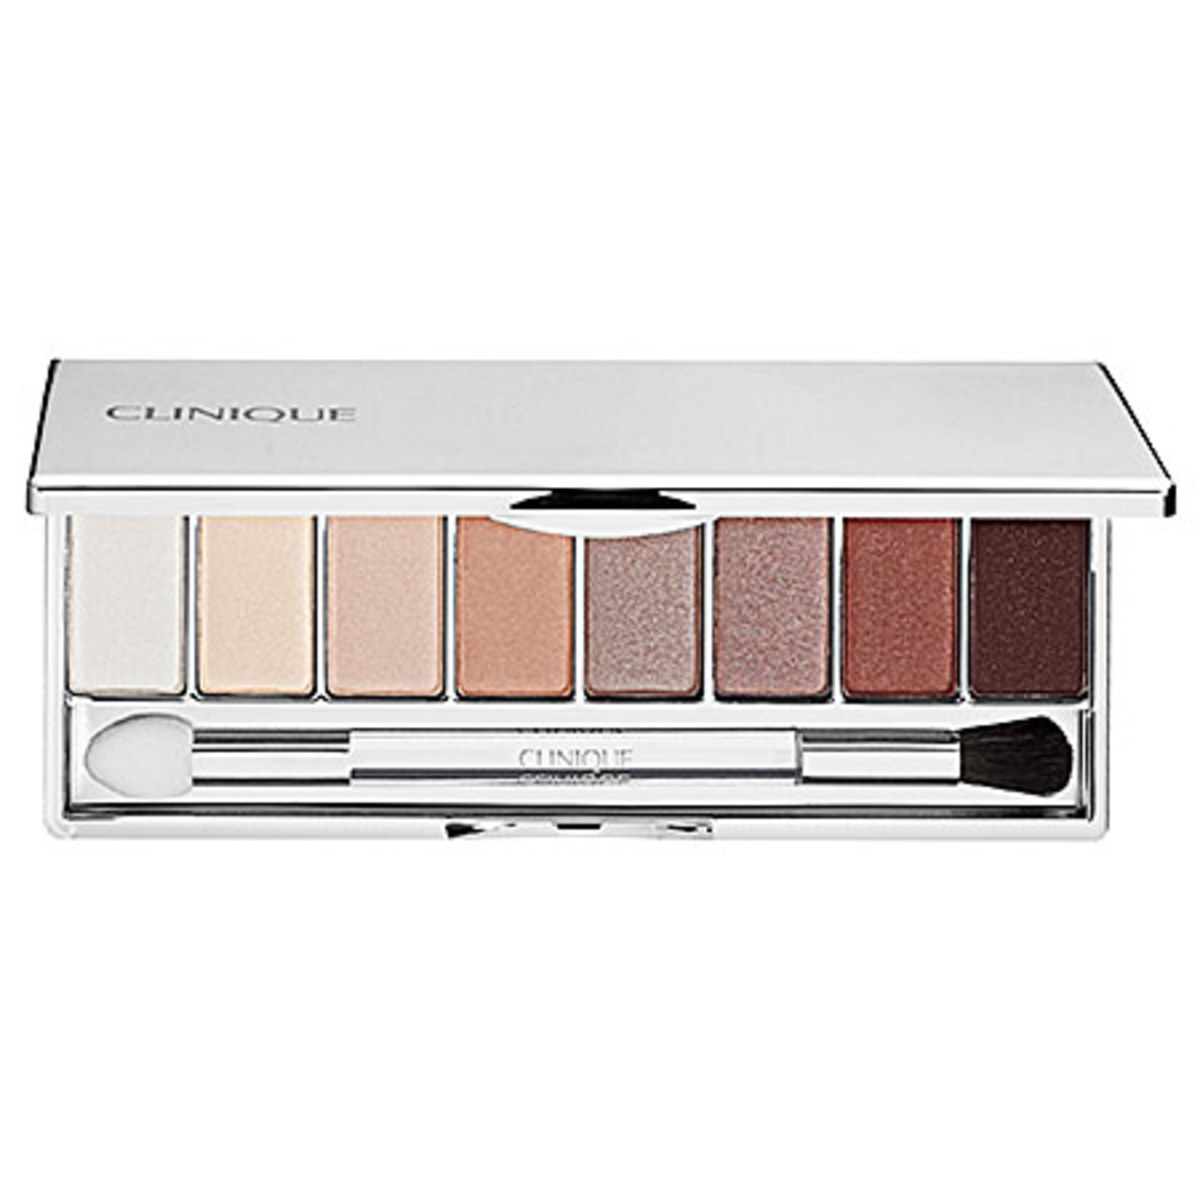 Clinique All About Shadow 8-Pan Palette Limited Edition Nudes in Neutral Territory 2